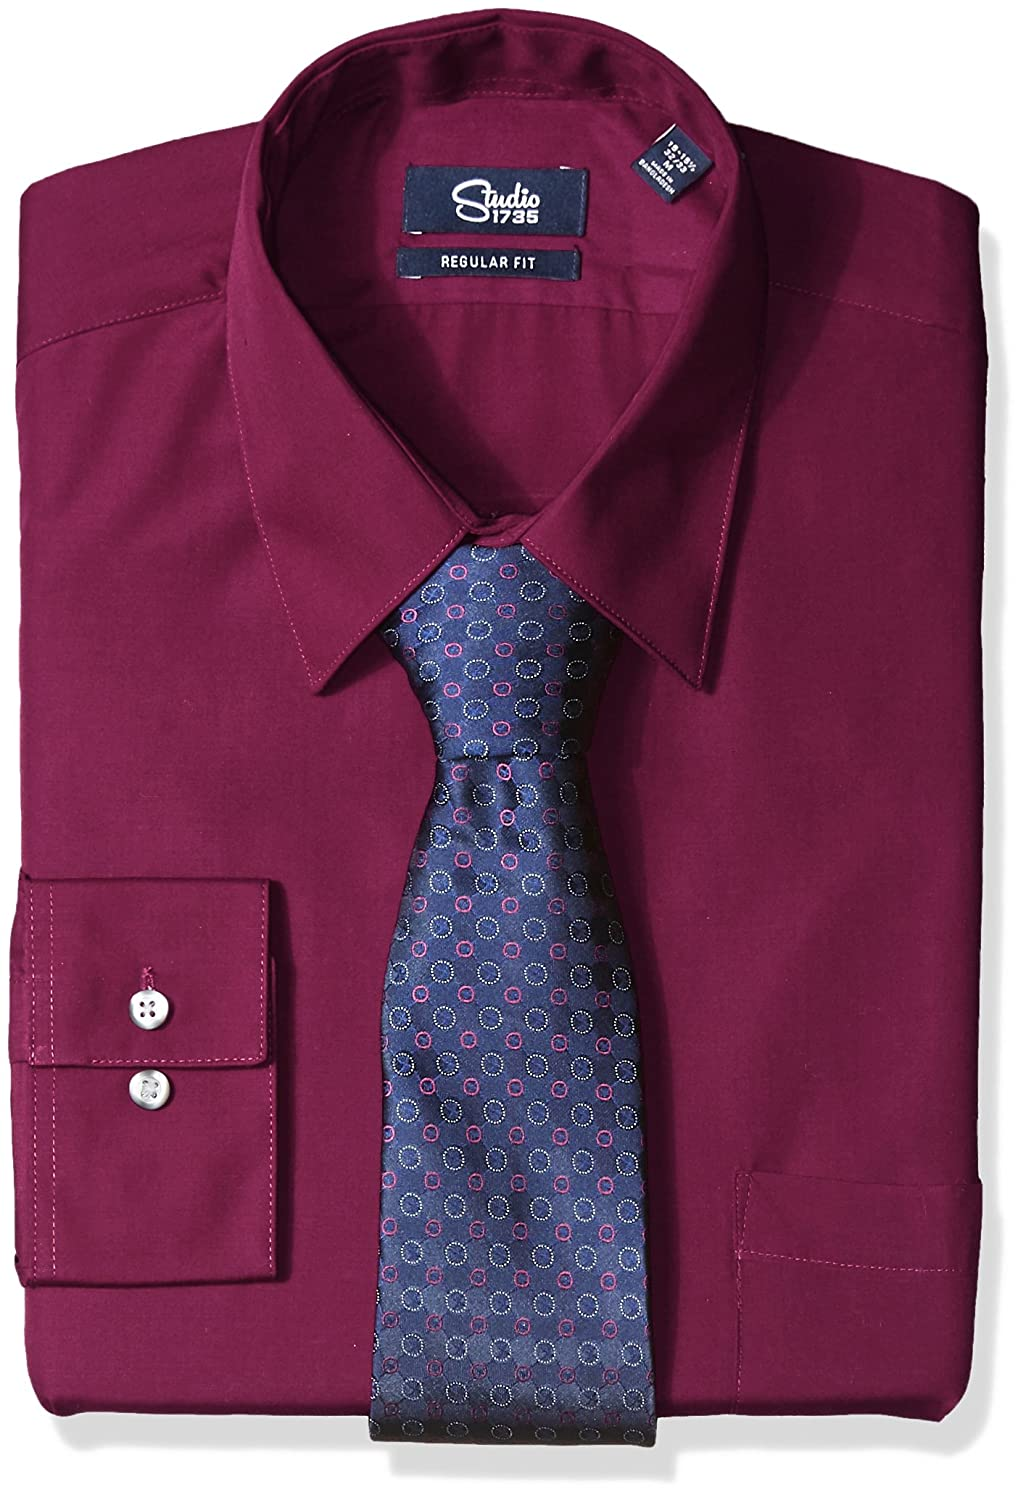 Studio 1735 Mens Dress Shirts And Tie Combo Dot Tie Athletic Fit At